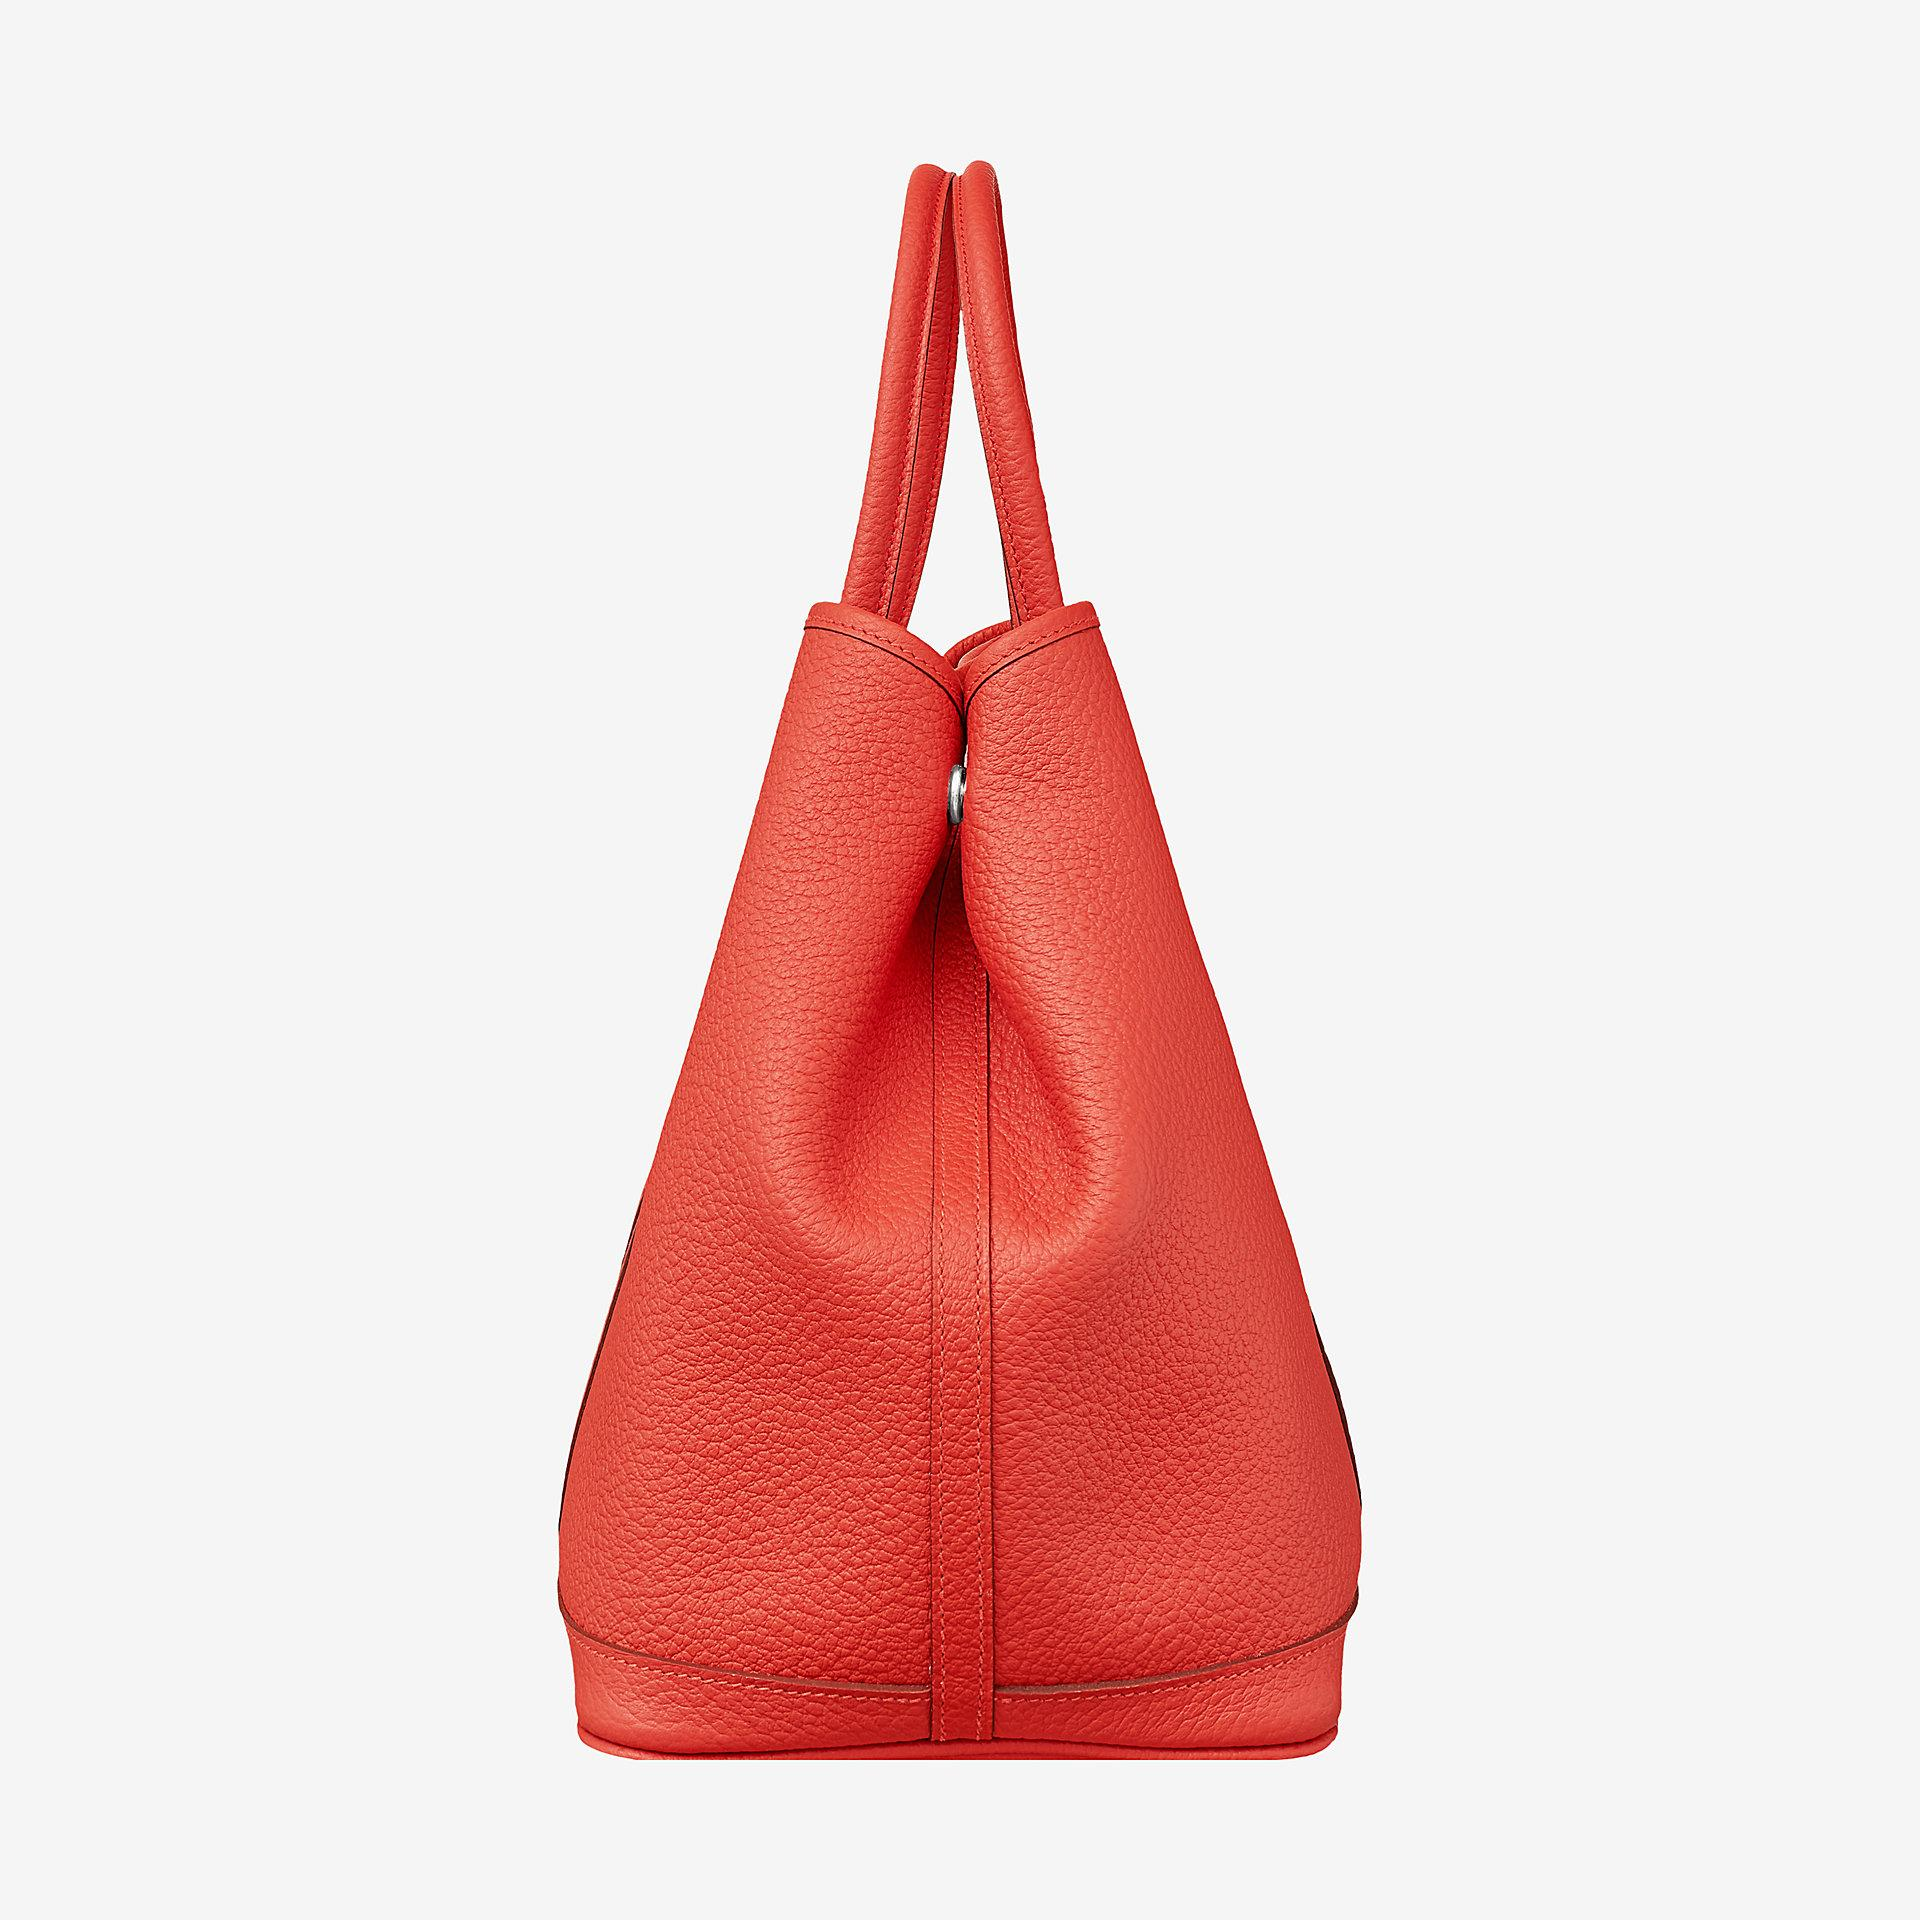 80536a33ac27 Hermes Garden Party 36 bag. Hermes bag in Country cowhide with chevron  canvas lining. Interior pocket. Palladium plated Clou de Selle snap